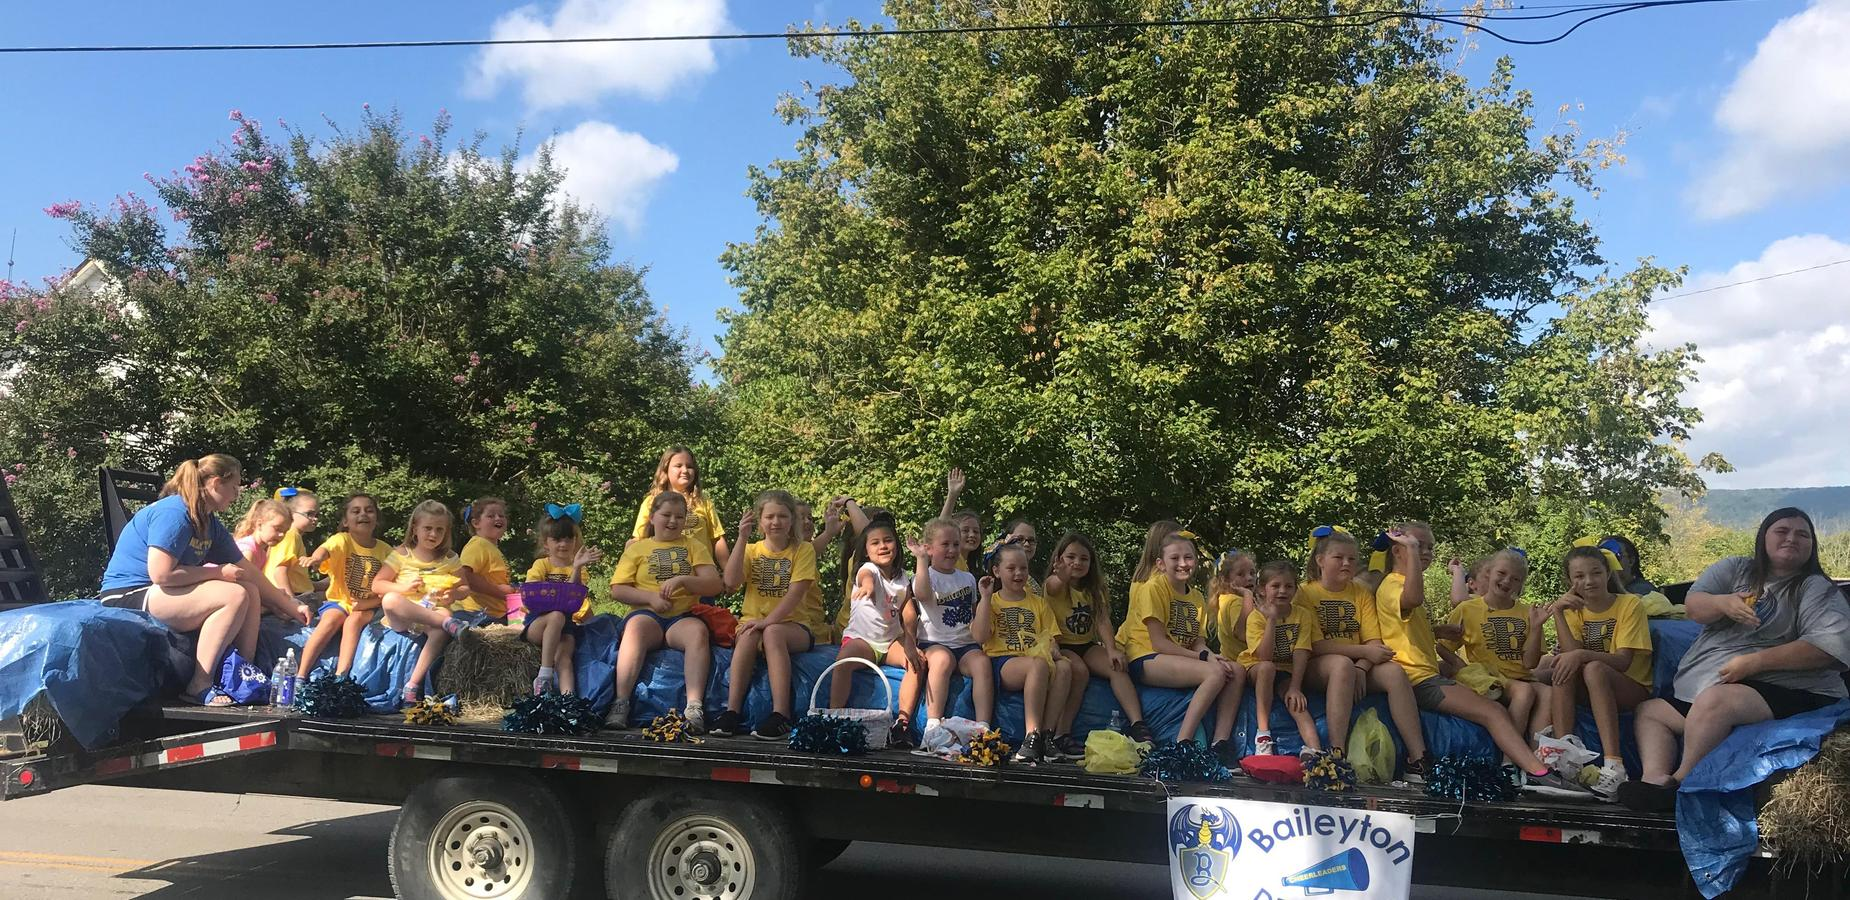 Cheer Team in the parade!